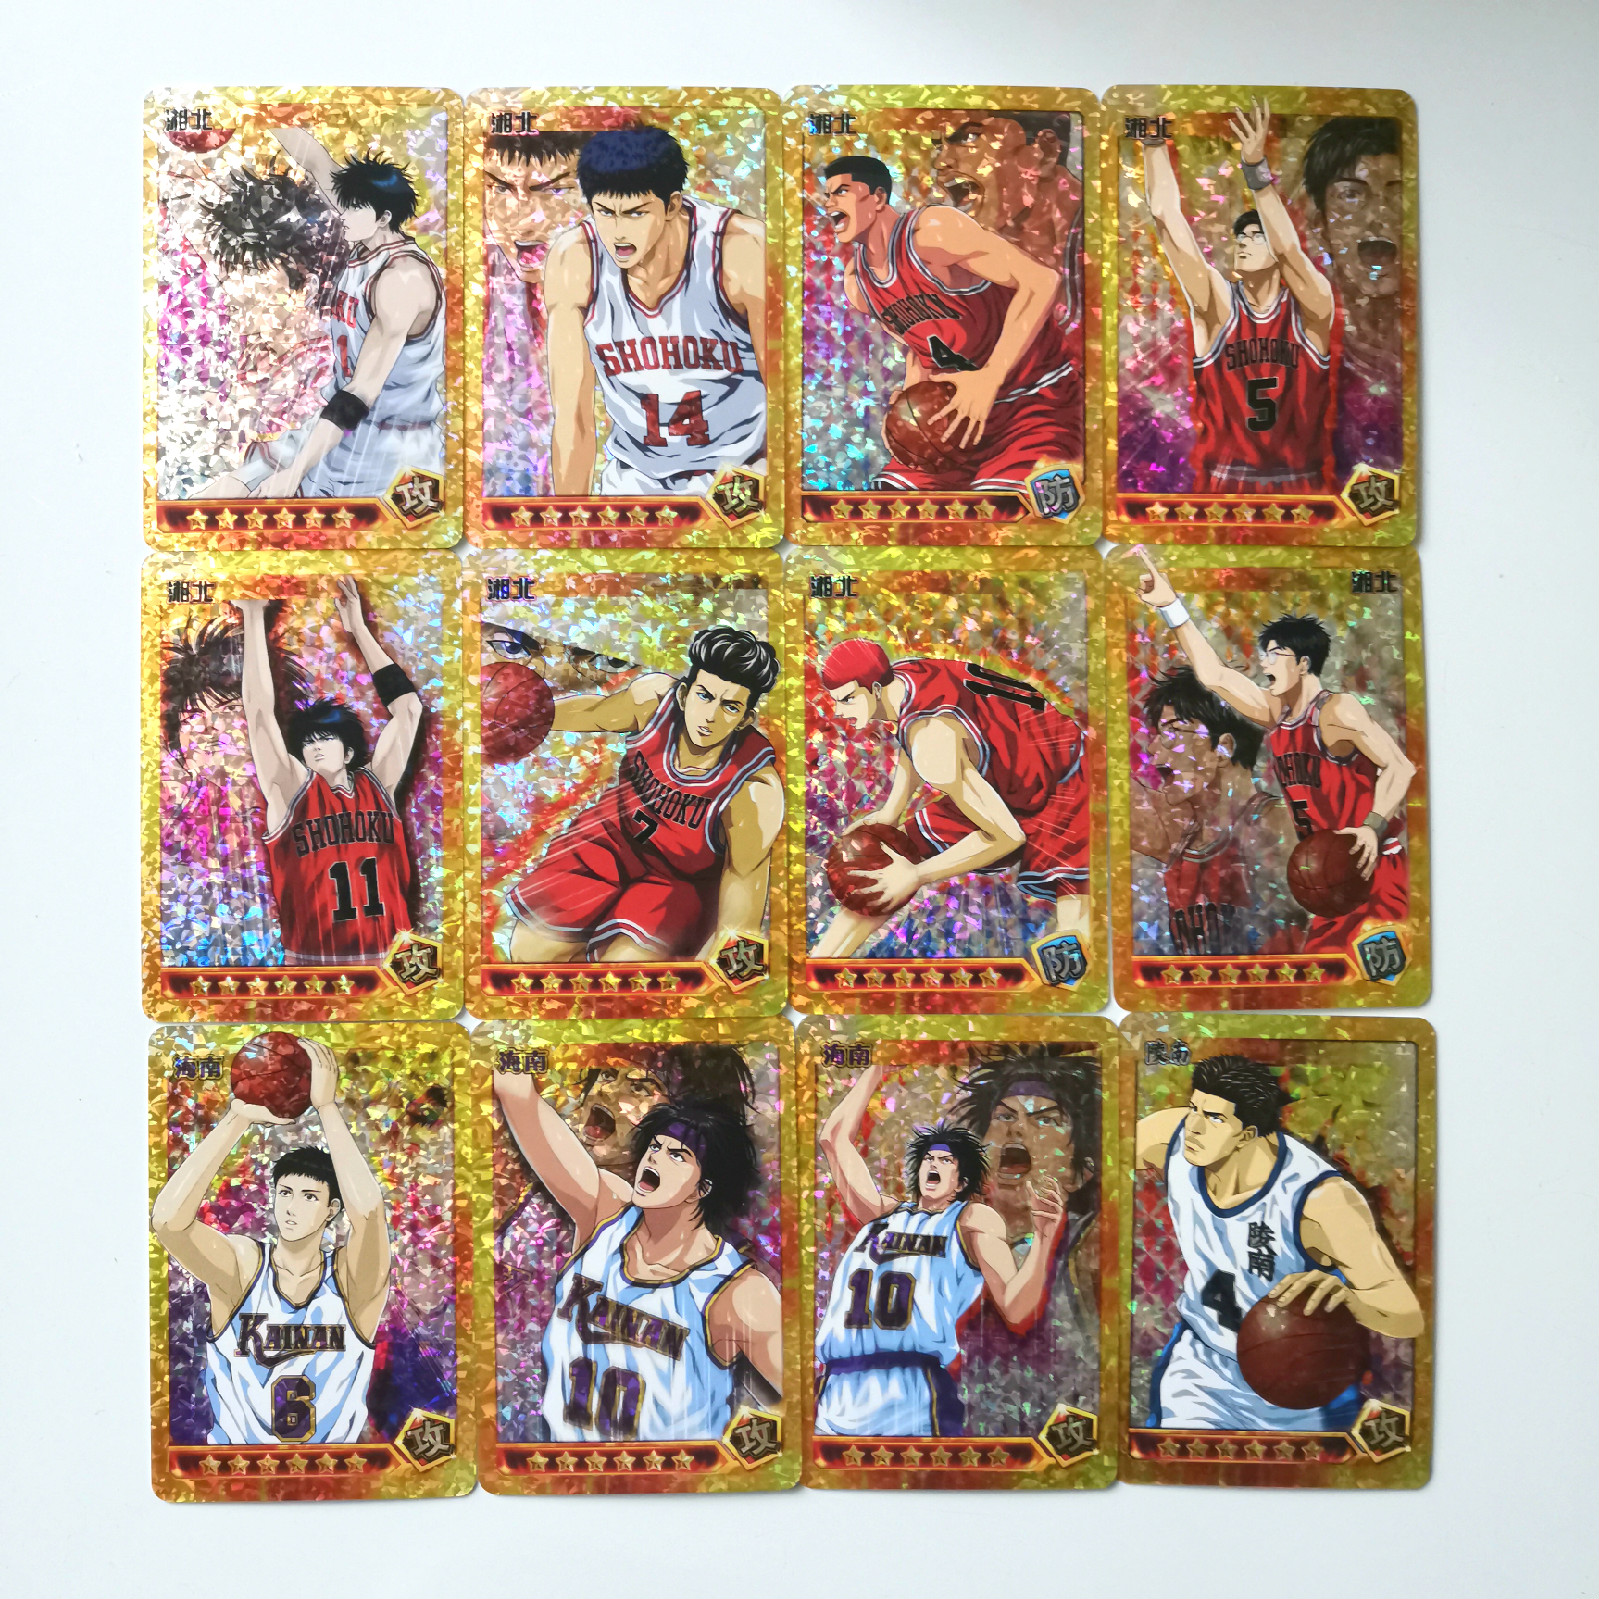 22pcs/set SLAM DUNK Toys Hobbies Hobby Collectibles Game Collection Anime Cards